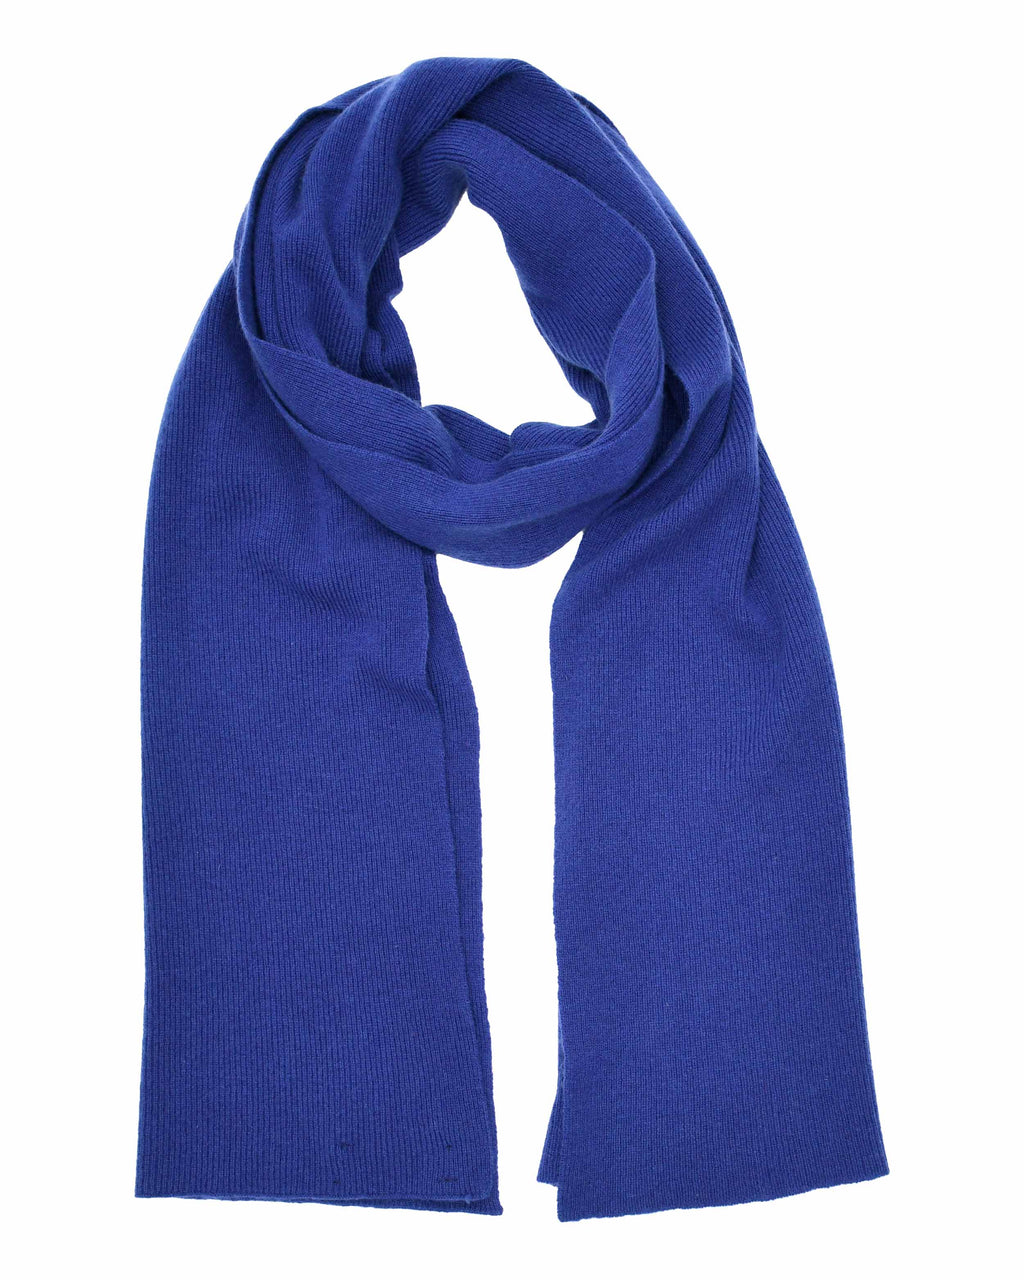 CA18509 - SOLID CASHMERE SCARF - accessories - scarves - Our cashmere scarf will be your new go to once the temperature drops and you're desperate for anything warm and cozy. This super soft piece is long enough to be styled in several different ways and comes in an array of colors to match everything already in your wardrobe. Add 1 line break Stylist tip: Pick fuchsia or sapphire to add a pop of color in gloomy winter months.